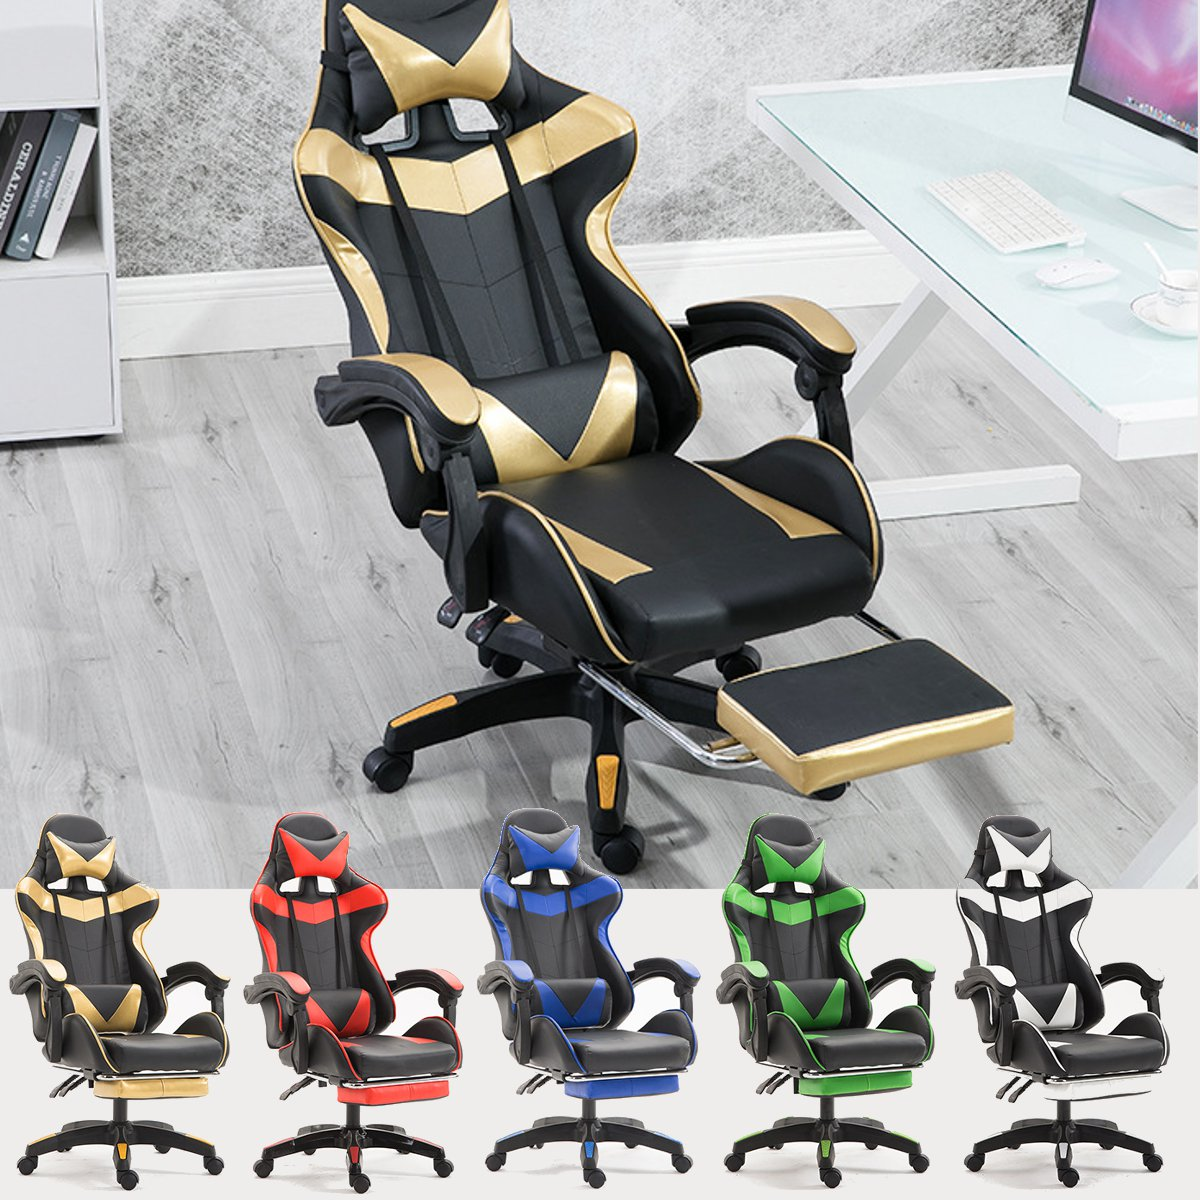 PU Leather Racing Gaming Chair Office High Back Ergonomic Recliner With Footrest Professional Computer Chair Furniture 5 Colors